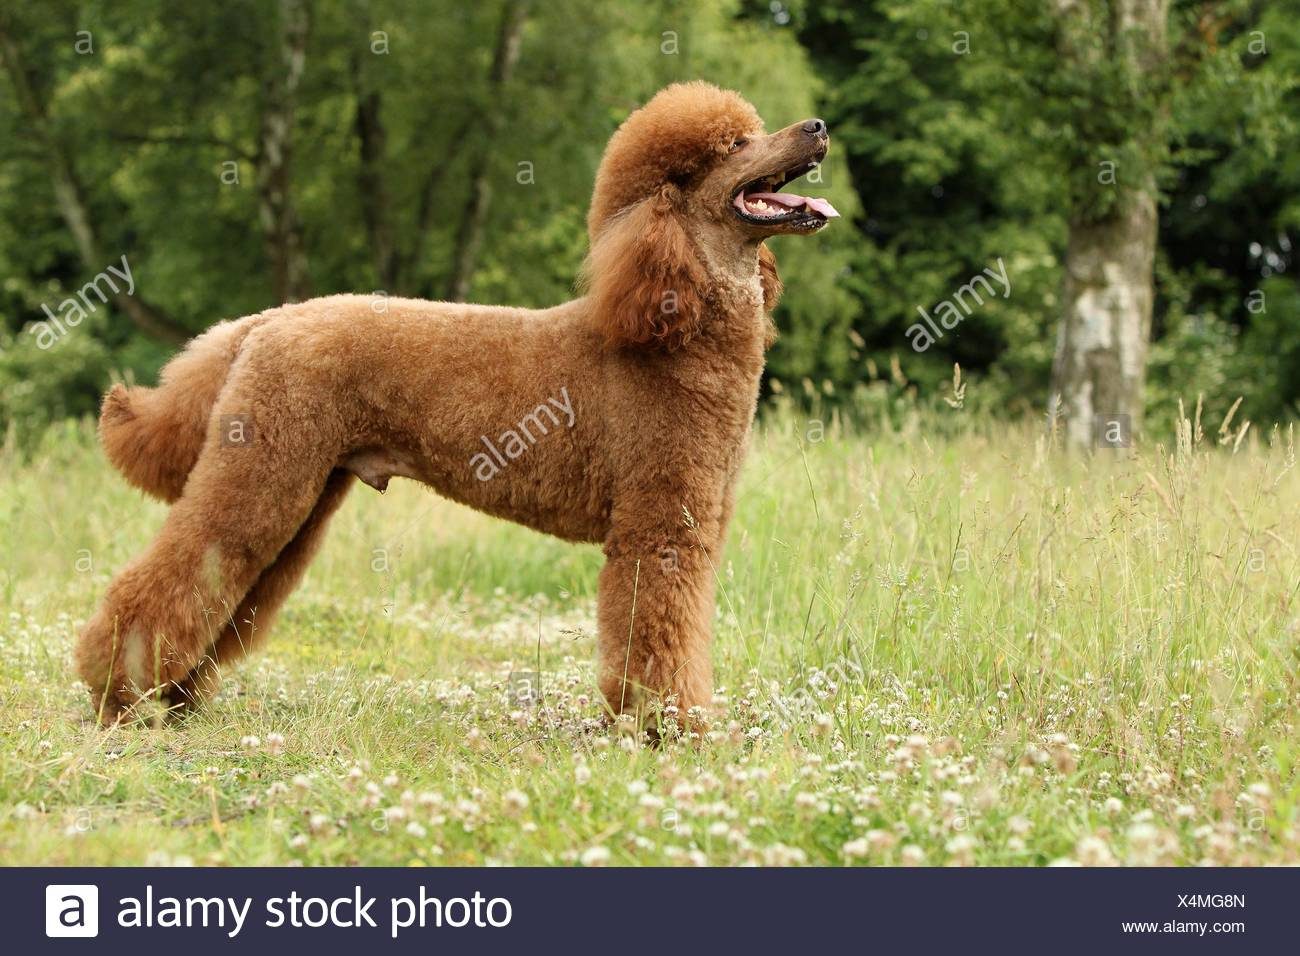 Poodle Side View Stock Photos & Poodle Side View Stock Images - Alamy